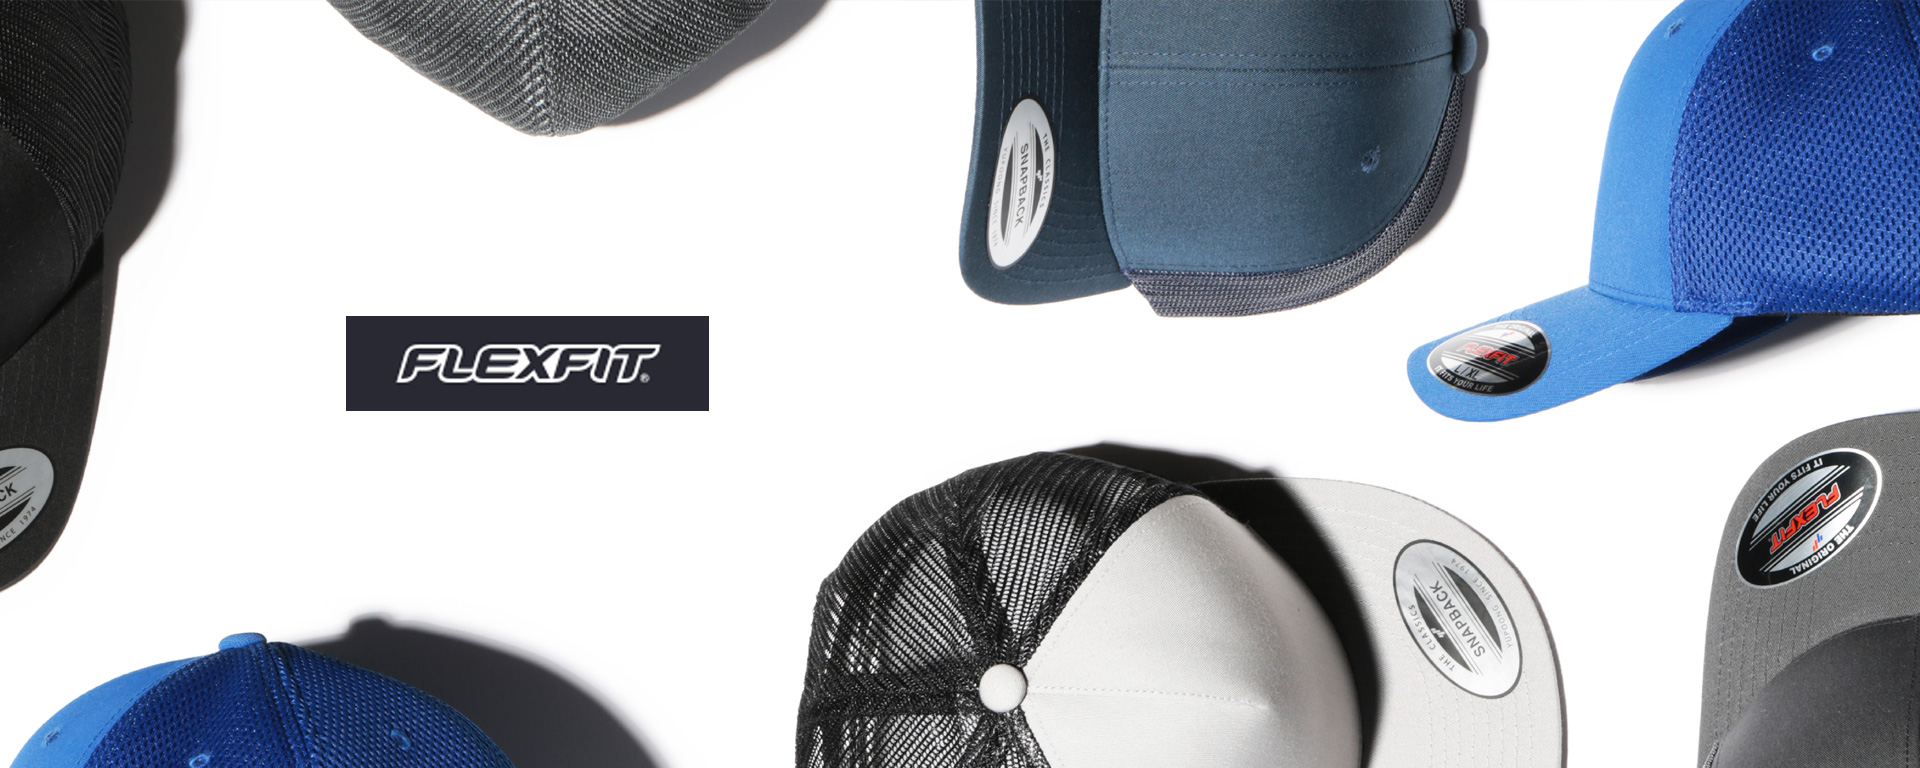 flexfit caps header image